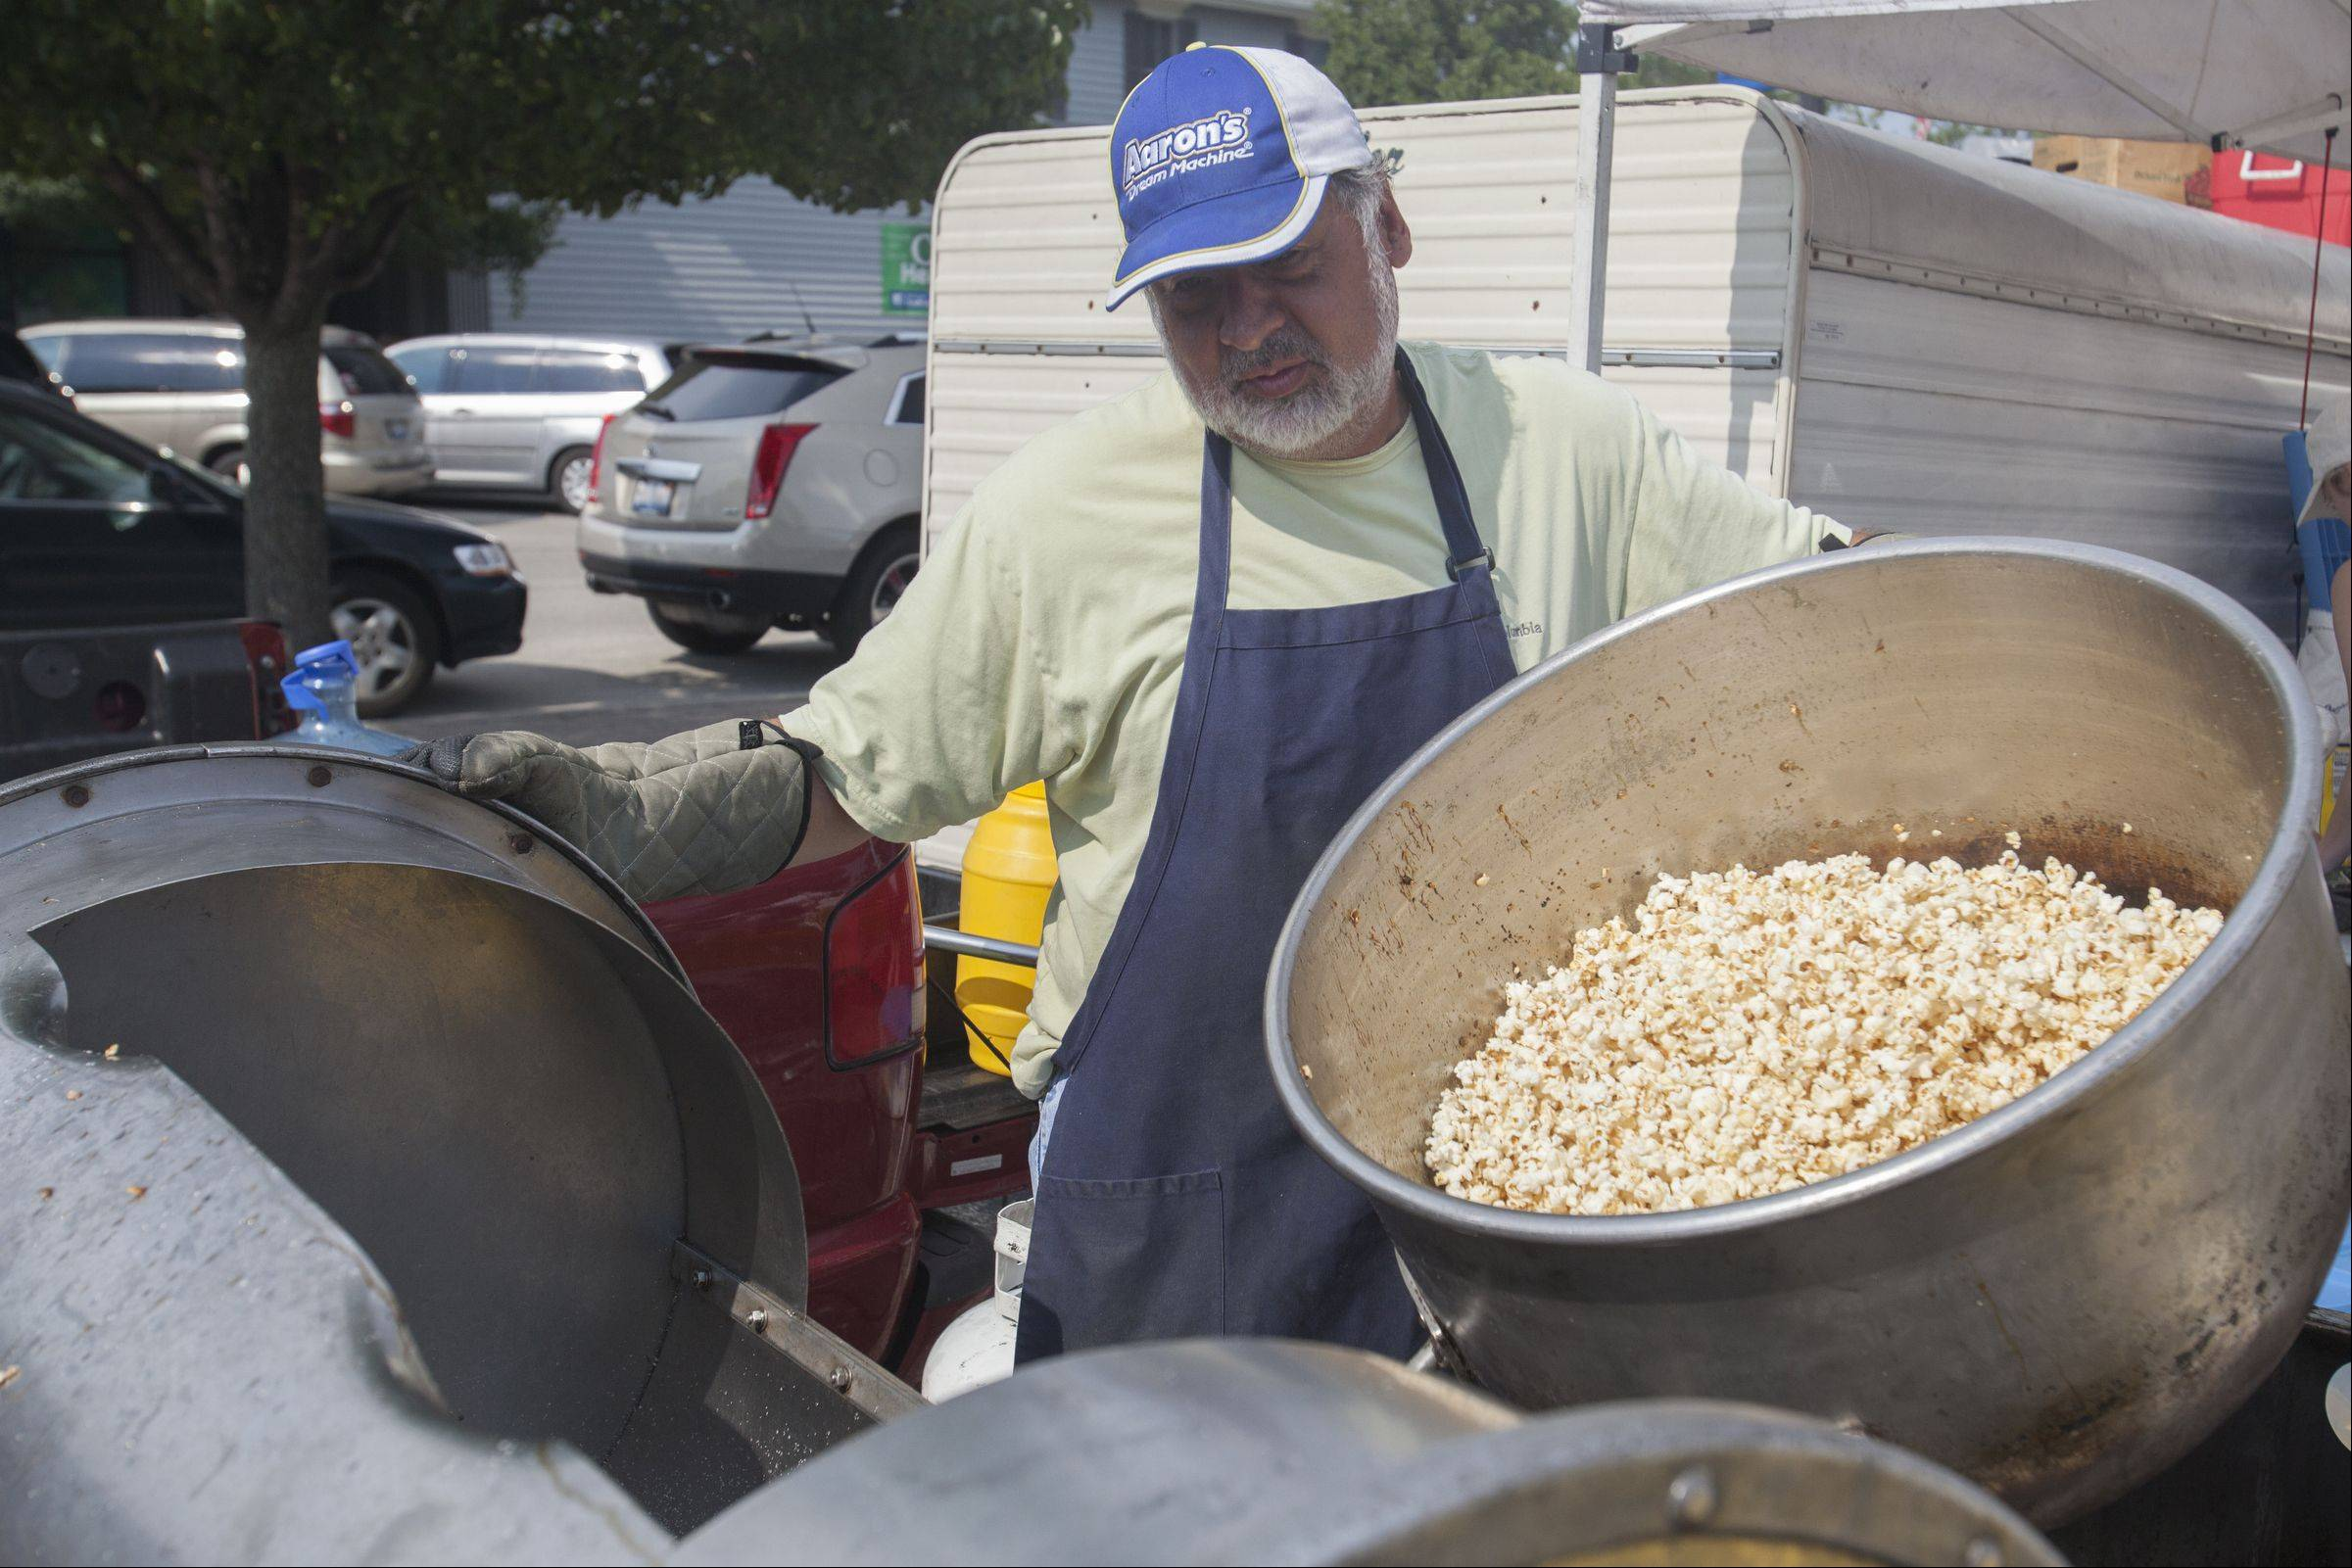 Caros Vidrio pours popcorn into a warmer during last year's Mundelein Farmers Market.